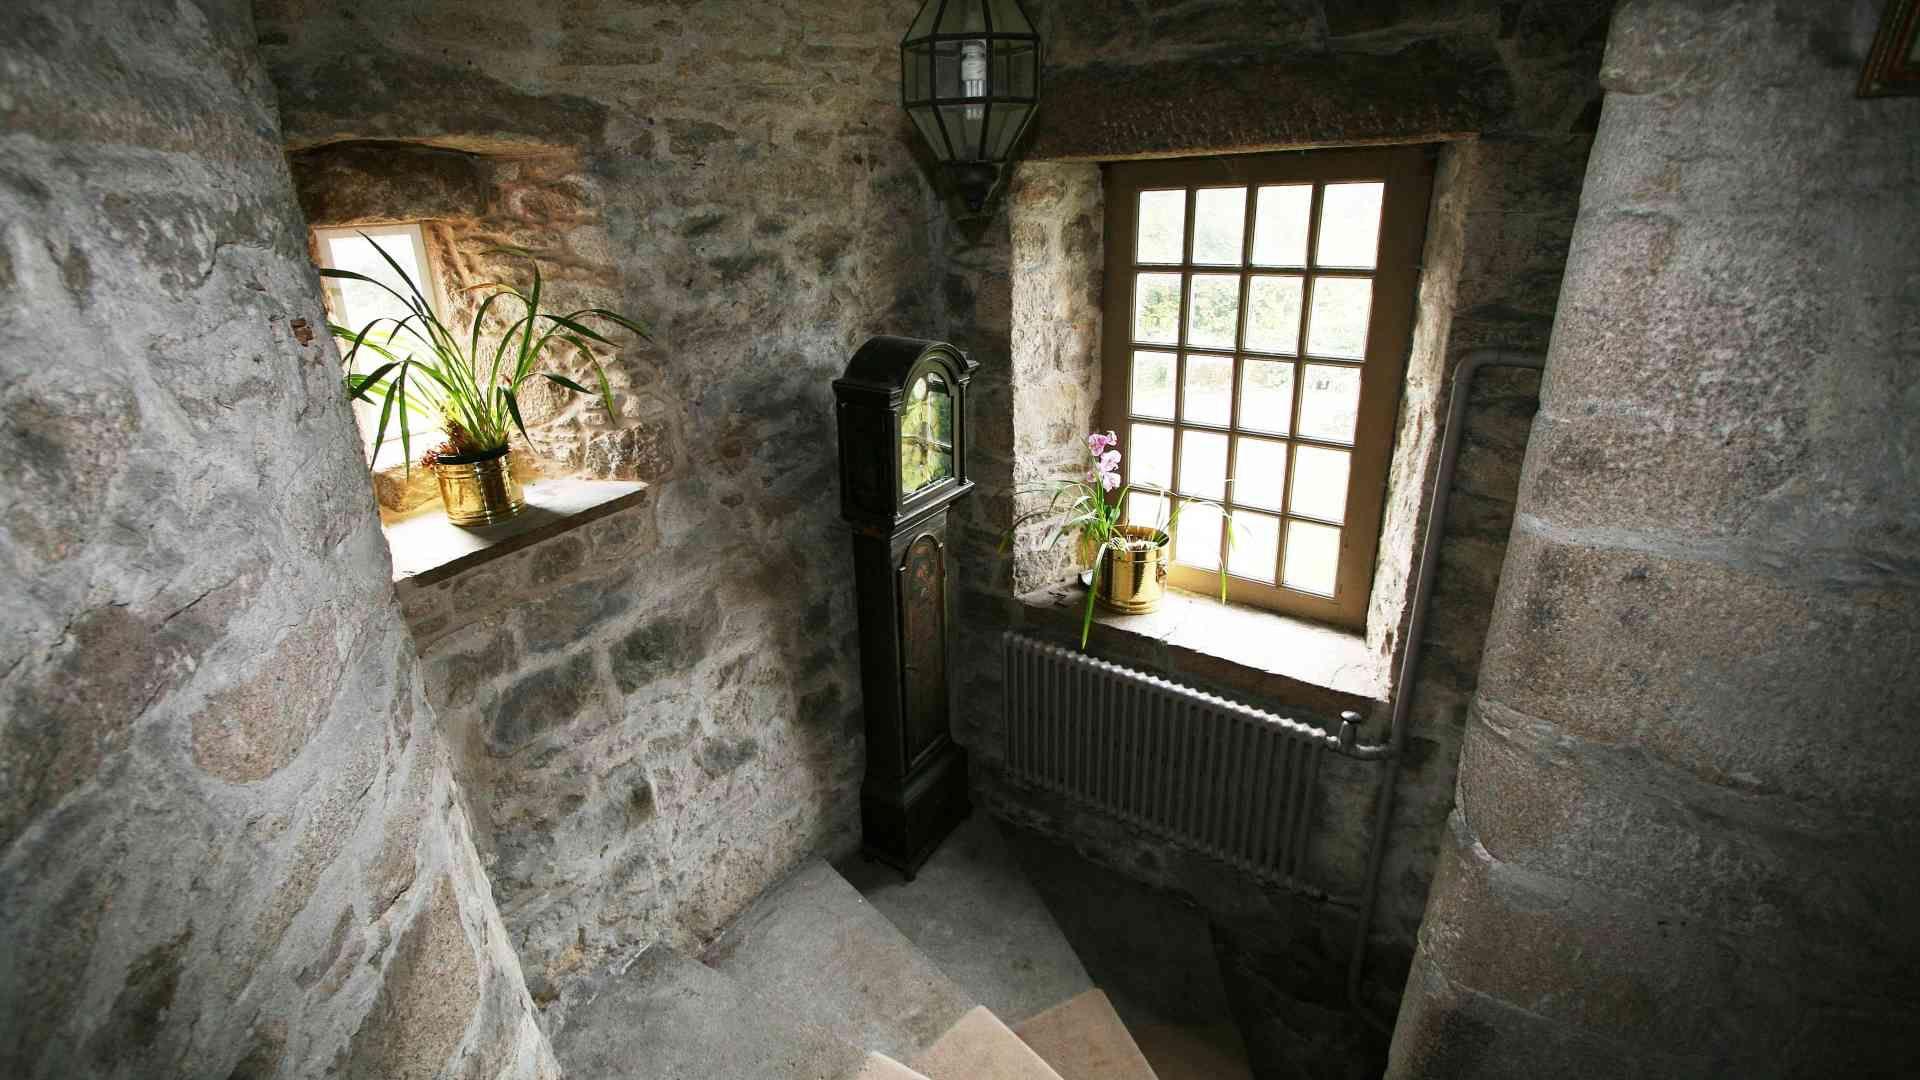 stone turnpike stairs in traditional fifteenth century castle near